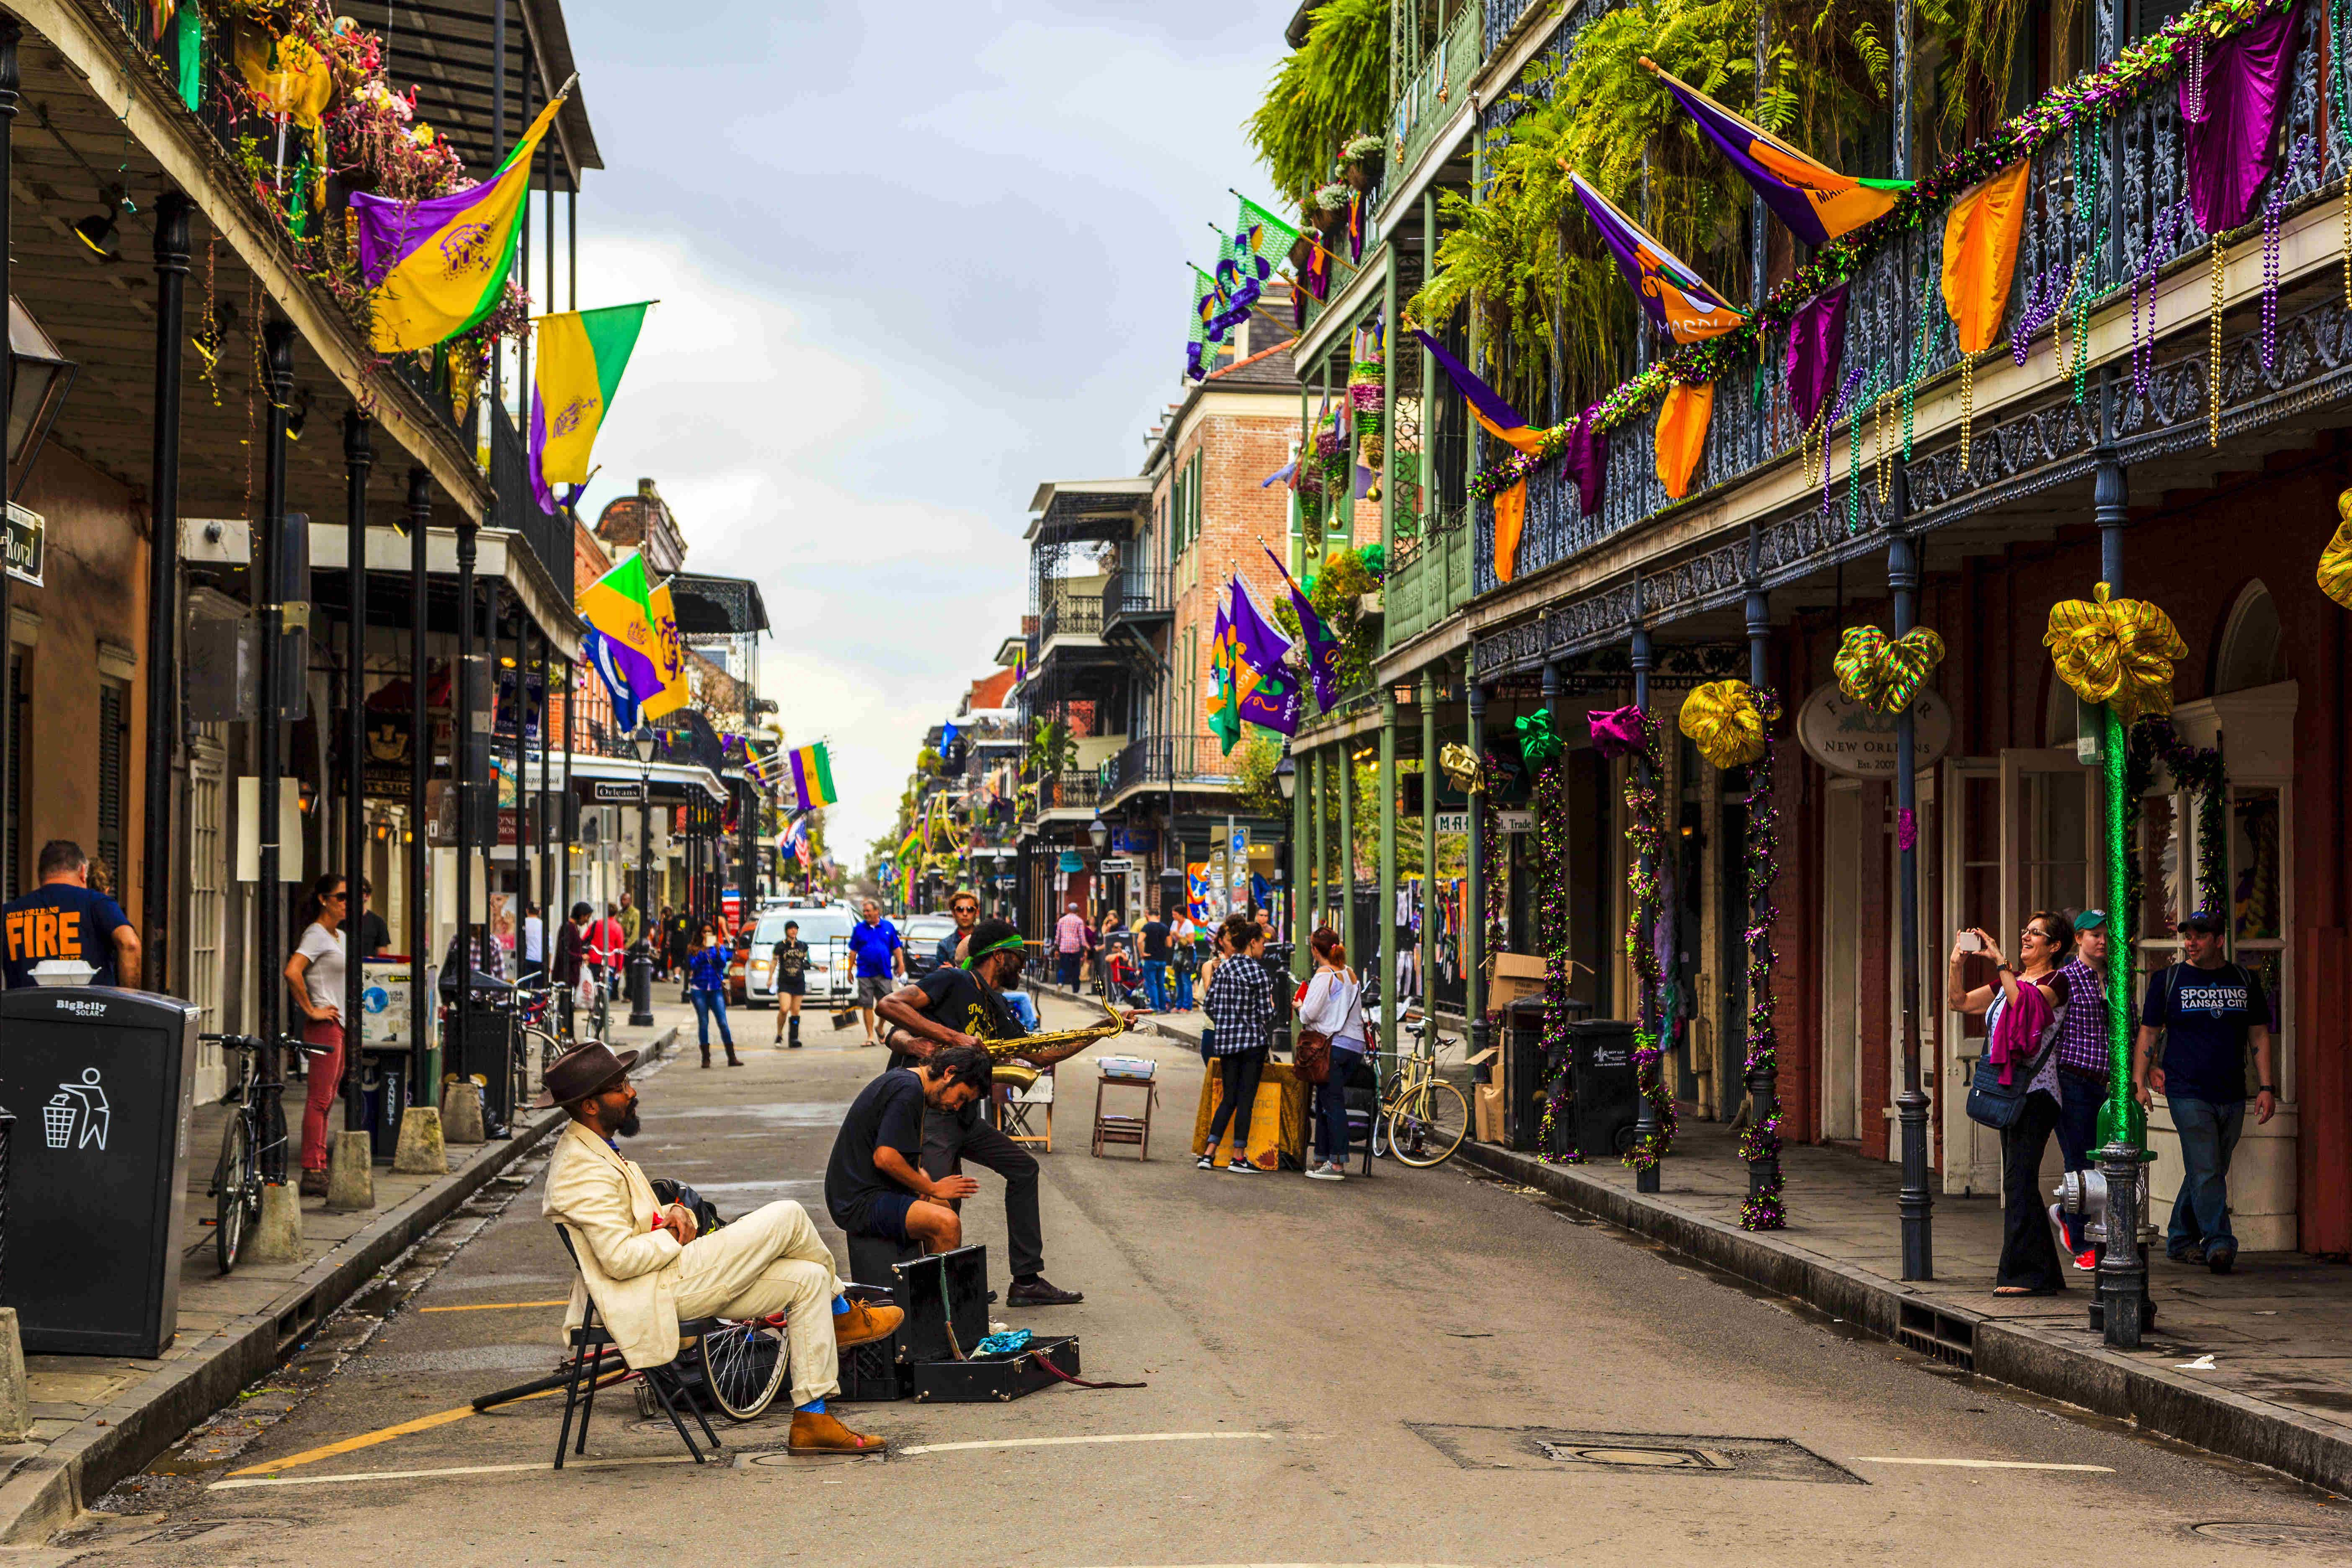 You can challenge young street poets of New Orleans to write a poem for you on the spot